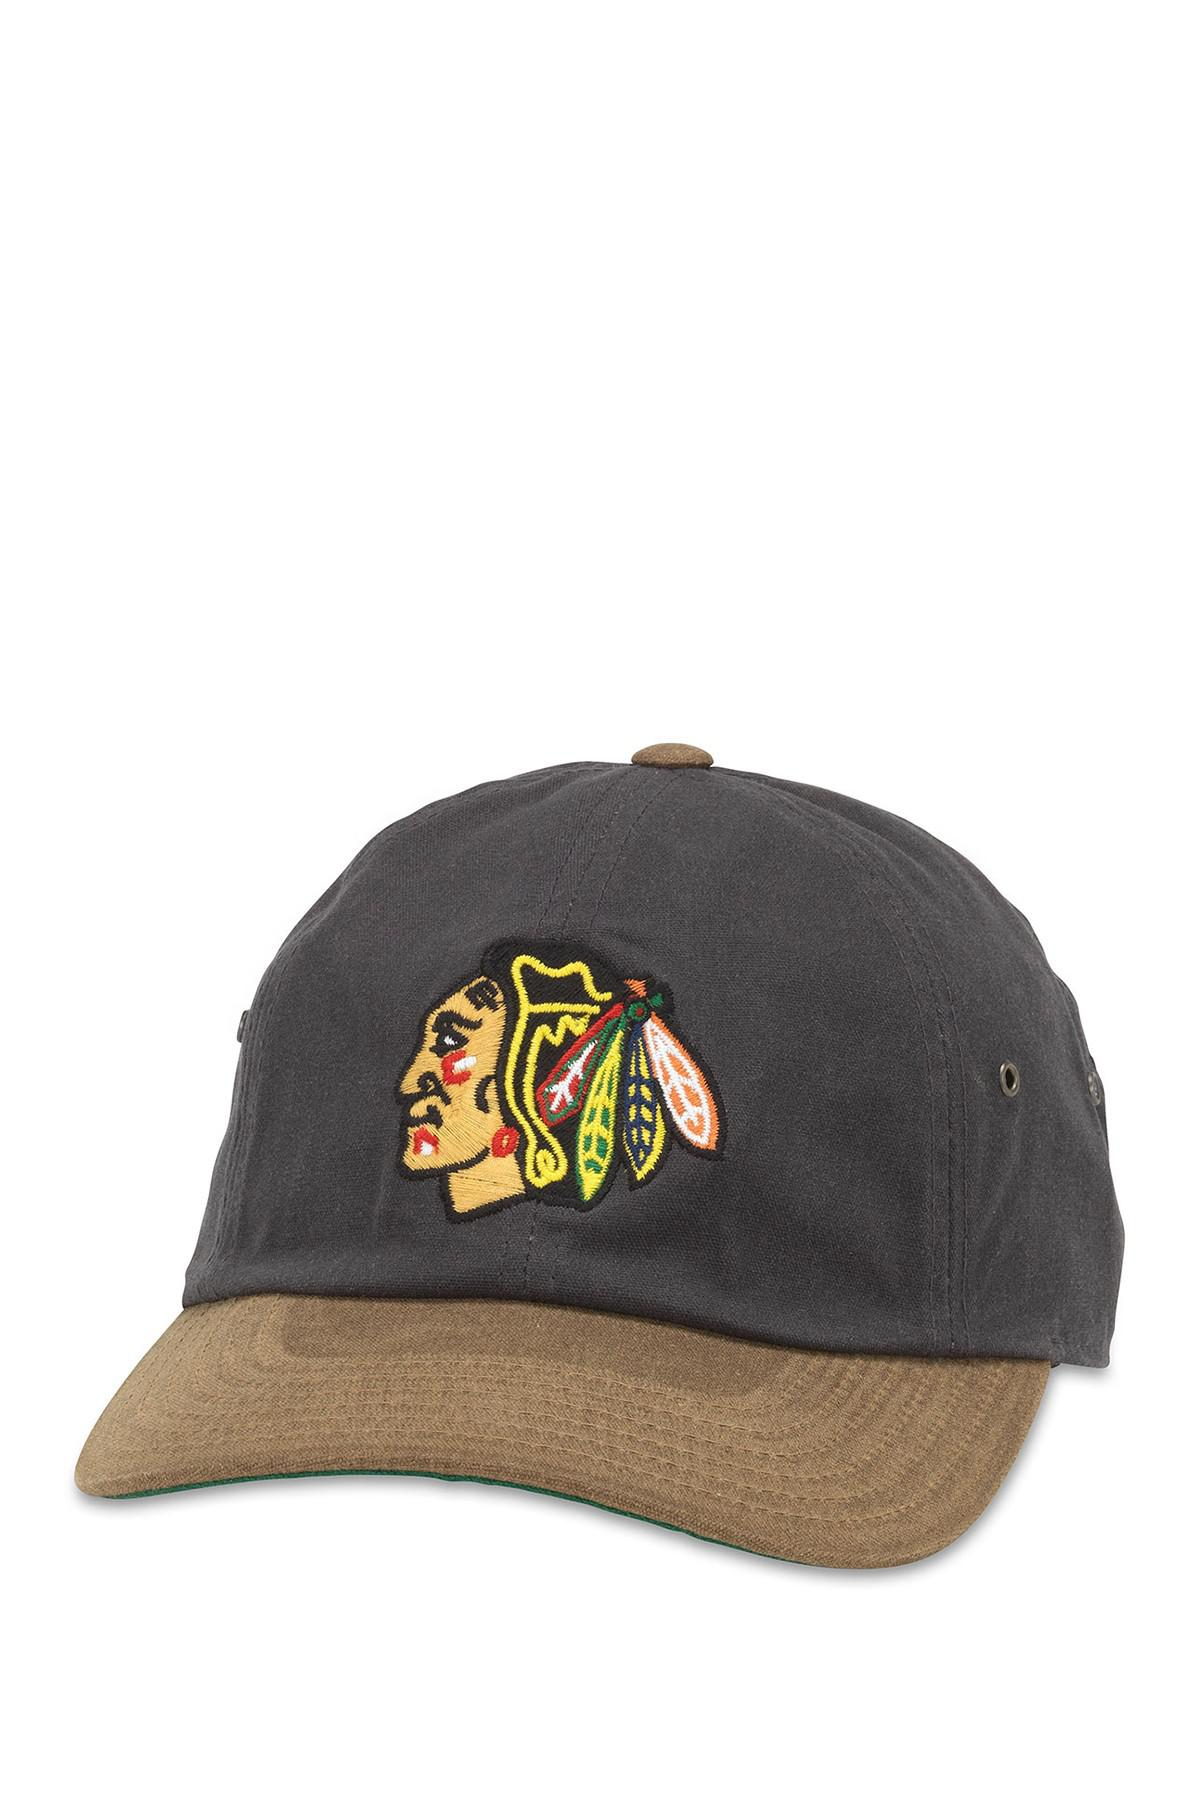 71db4b16b26 Lyst - American Needle Nhl Chicago Blackhawks Waxed Taylor Baseball ...